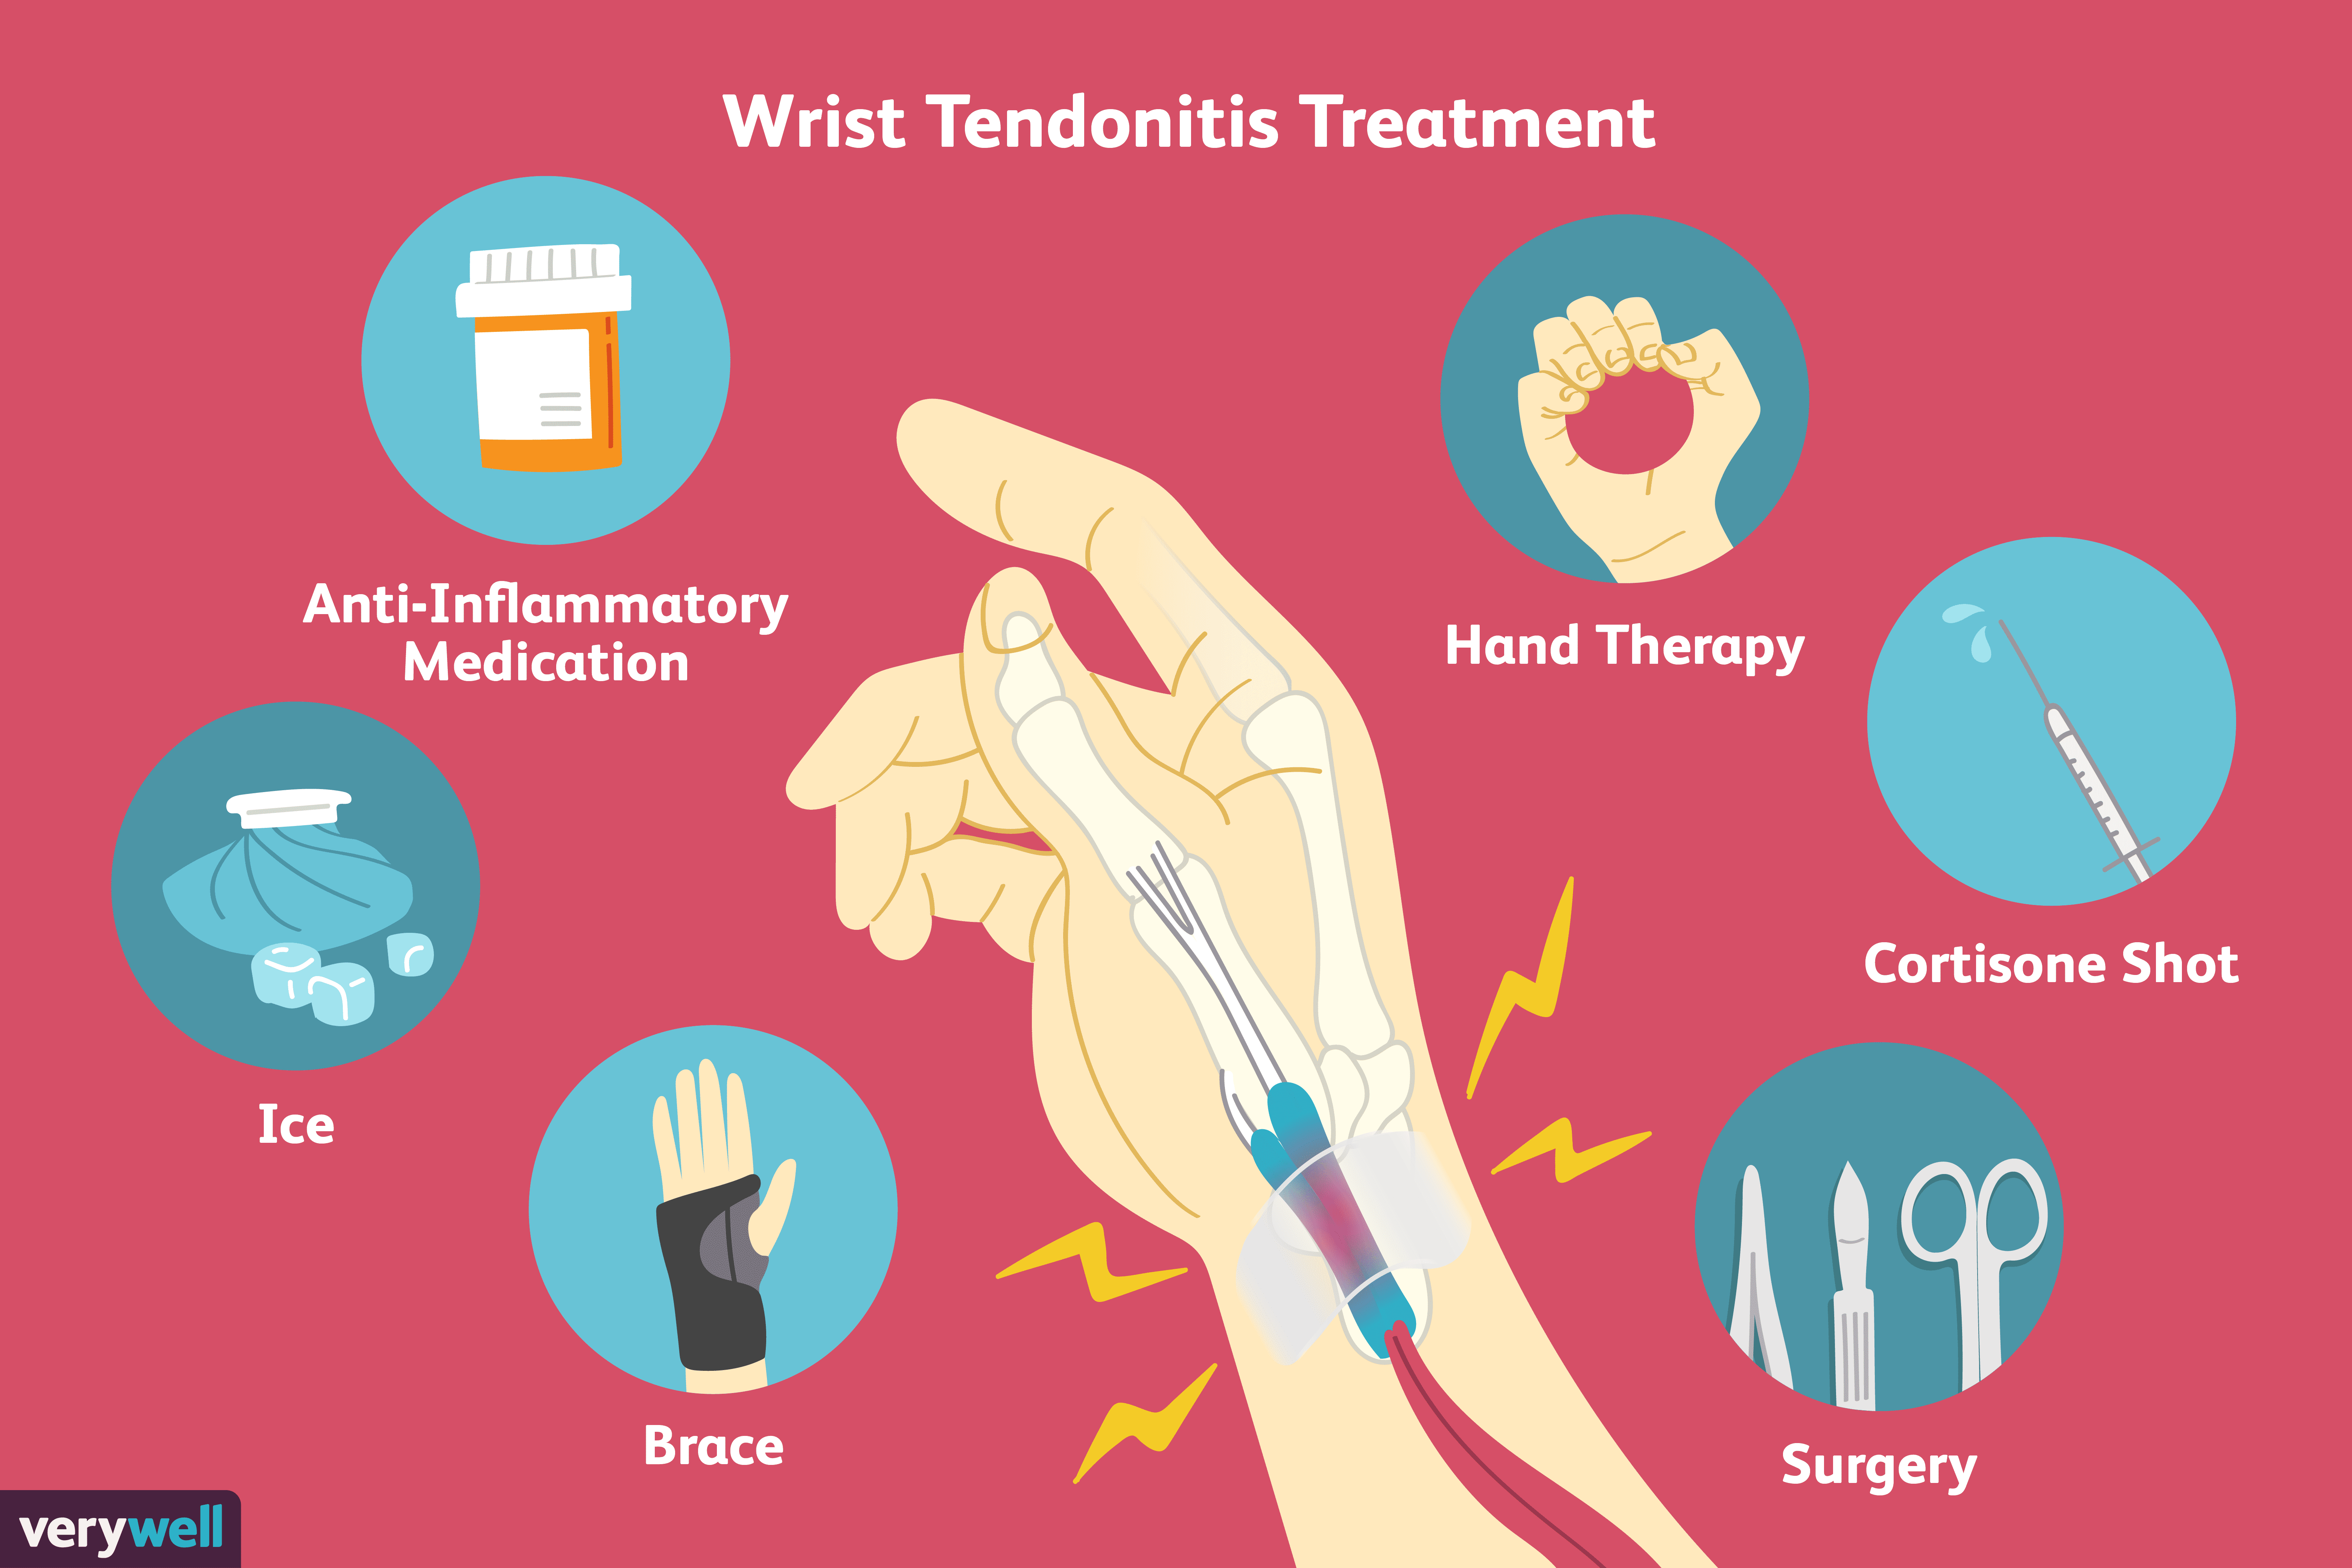 Wrist Tendonitis Signs, Causes, and Treatments